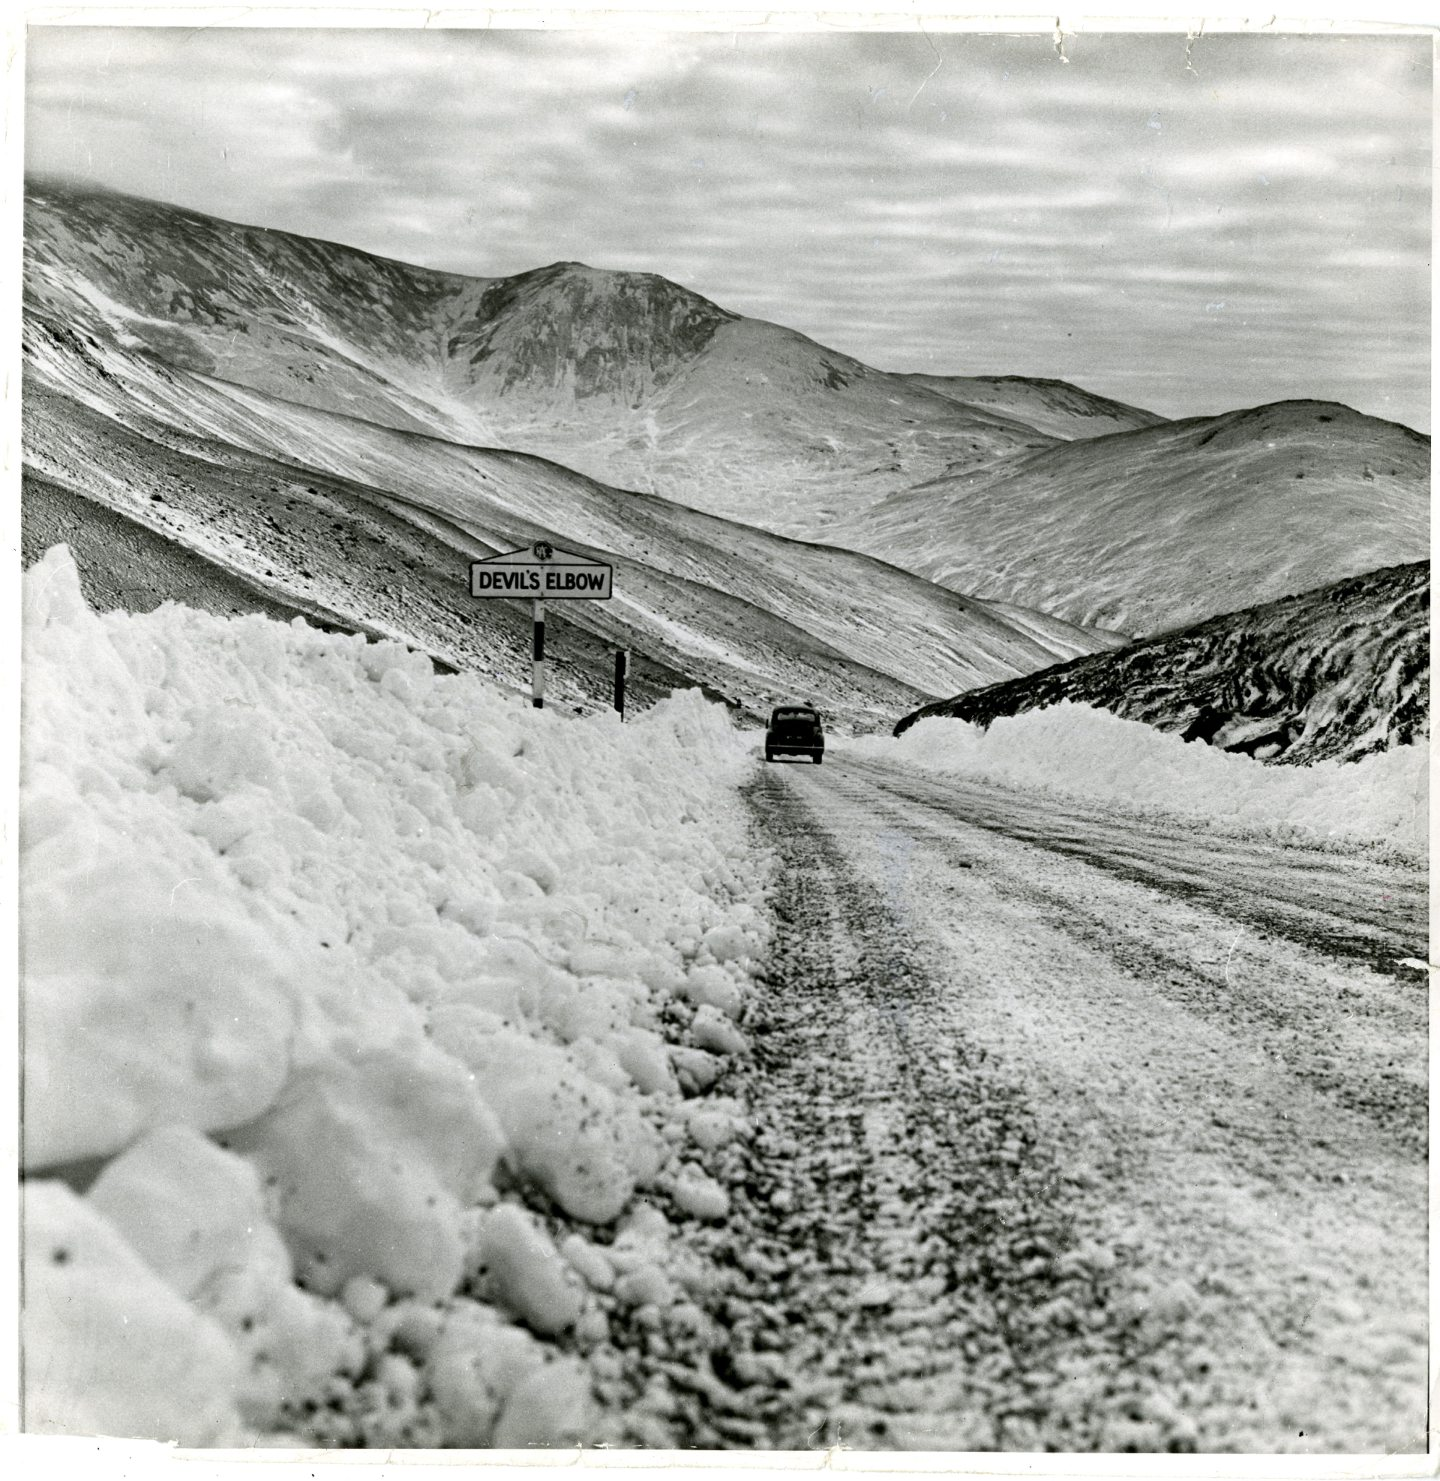 The Devil's Elbow in November 1962 after being cleared by snowploughs